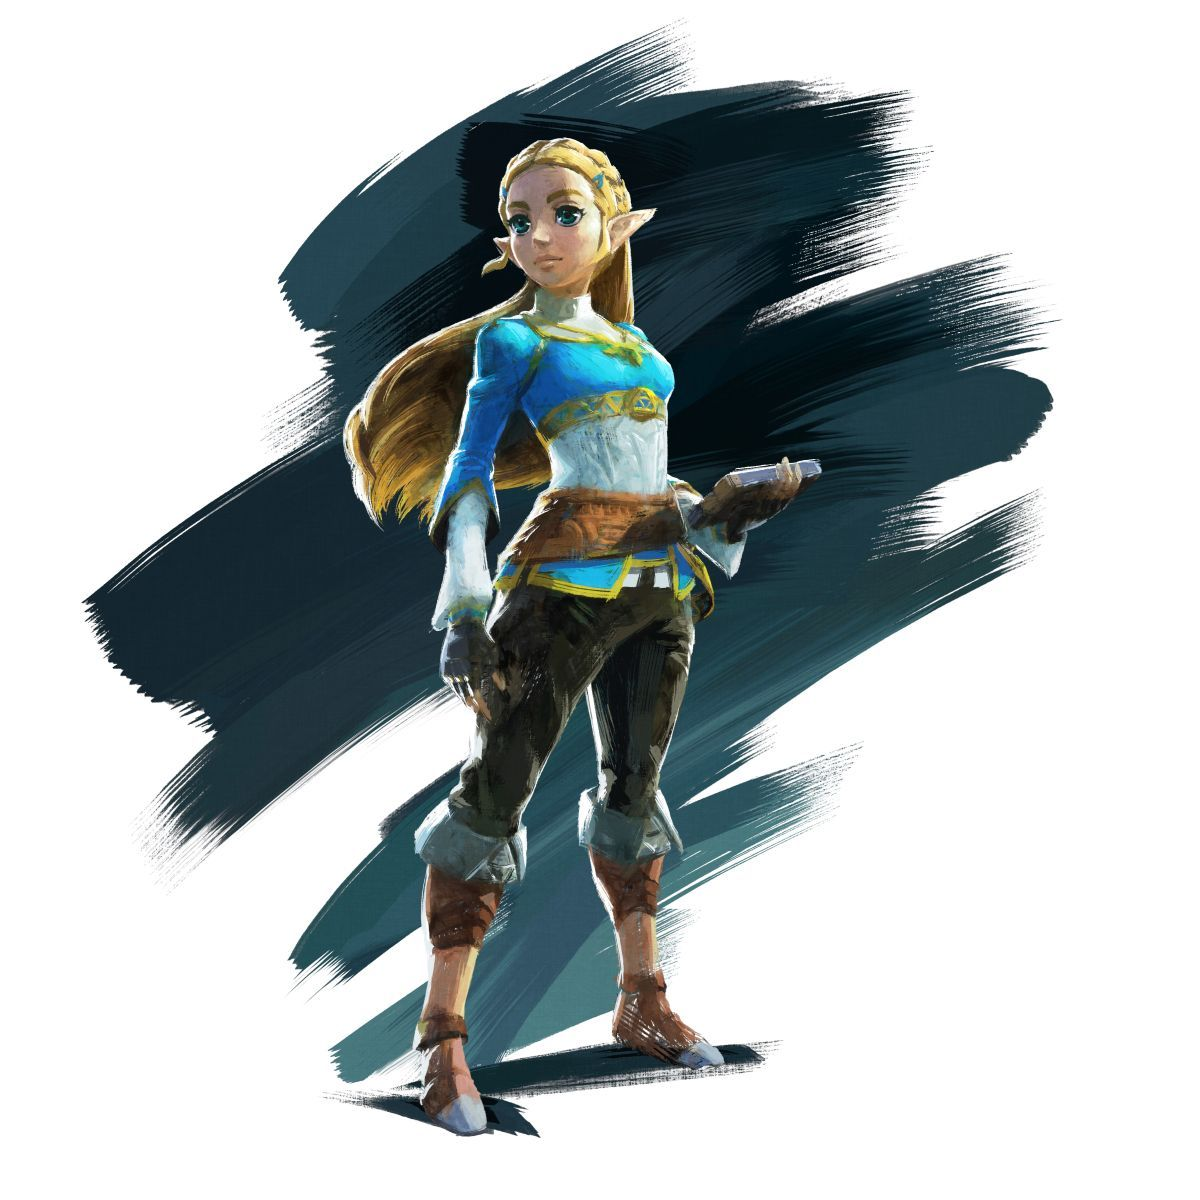 Just ahead of Breath of the Wild's release, here's everything we know about Princess Zelda's role in the game. https://t.co/ffN54c3Wpo